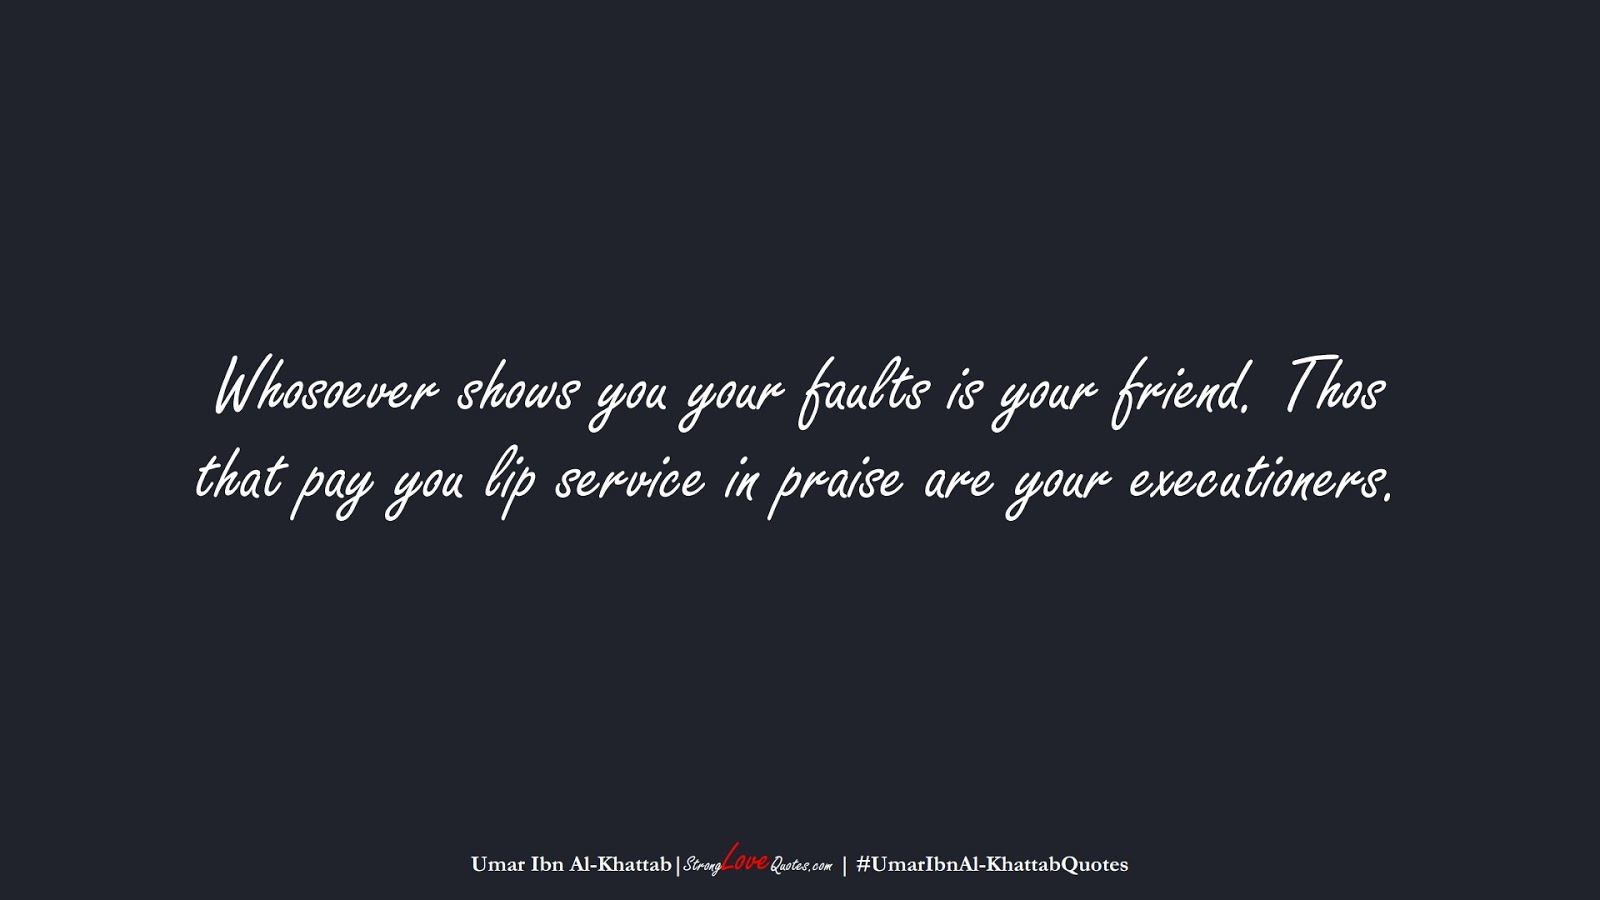 Whosoever shows you your faults is your friend. Thos that pay you lip service in praise are your executioners. (Umar Ibn Al-Khattab);  #UmarIbnAl-KhattabQuotes